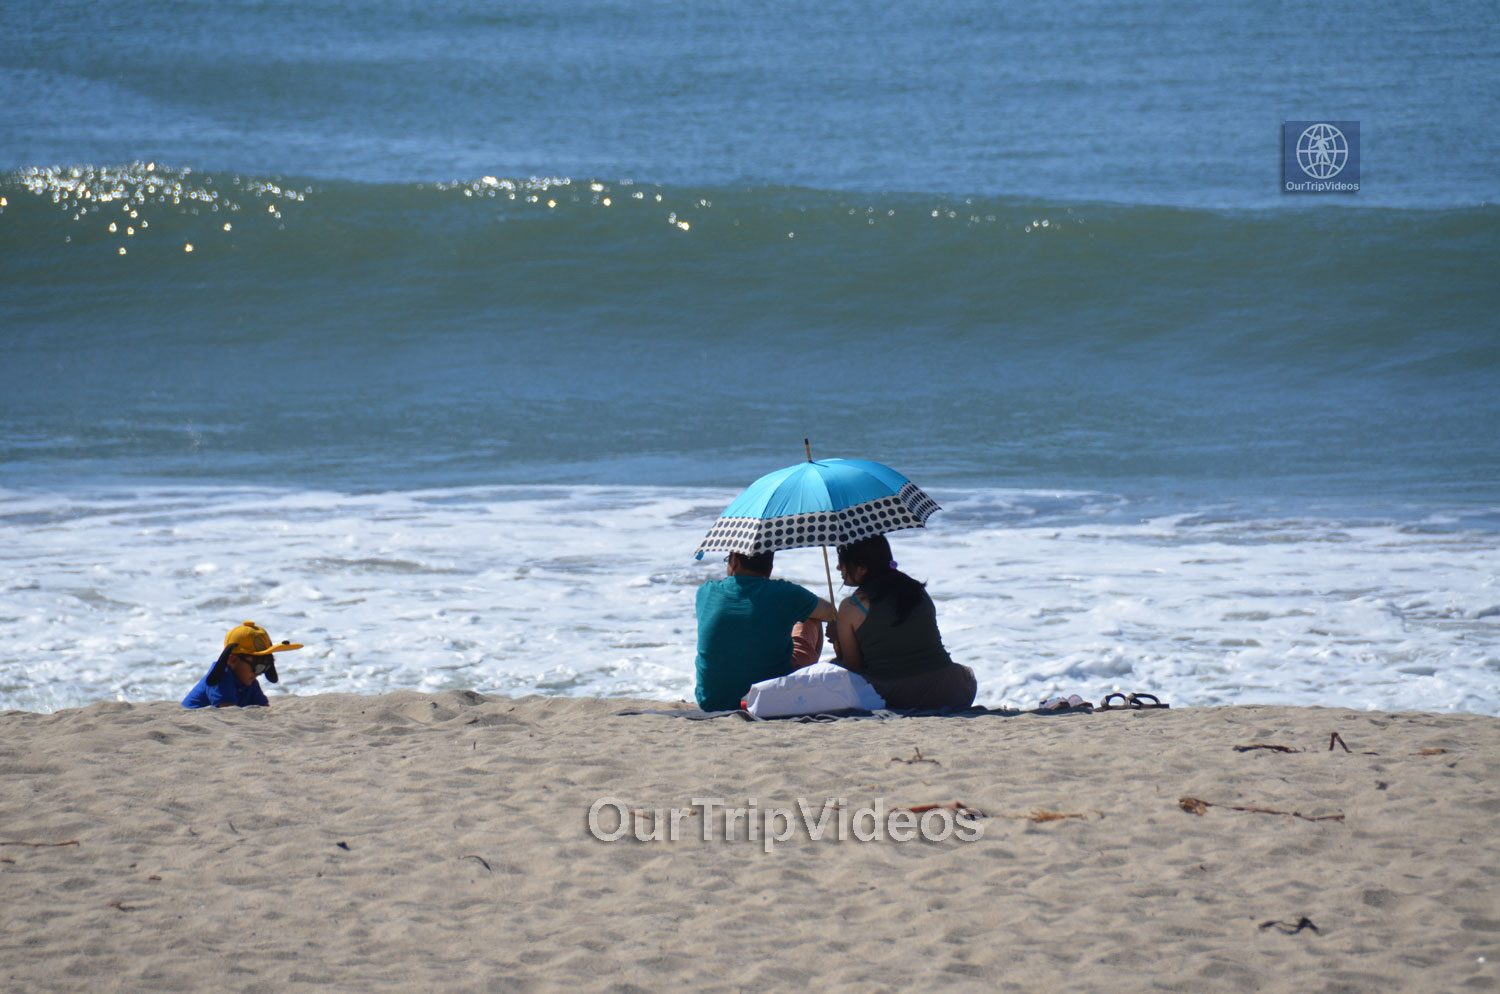 State Beach(Francis Beach), Half Moon Bay, CA, USA - Picture 22 of 25